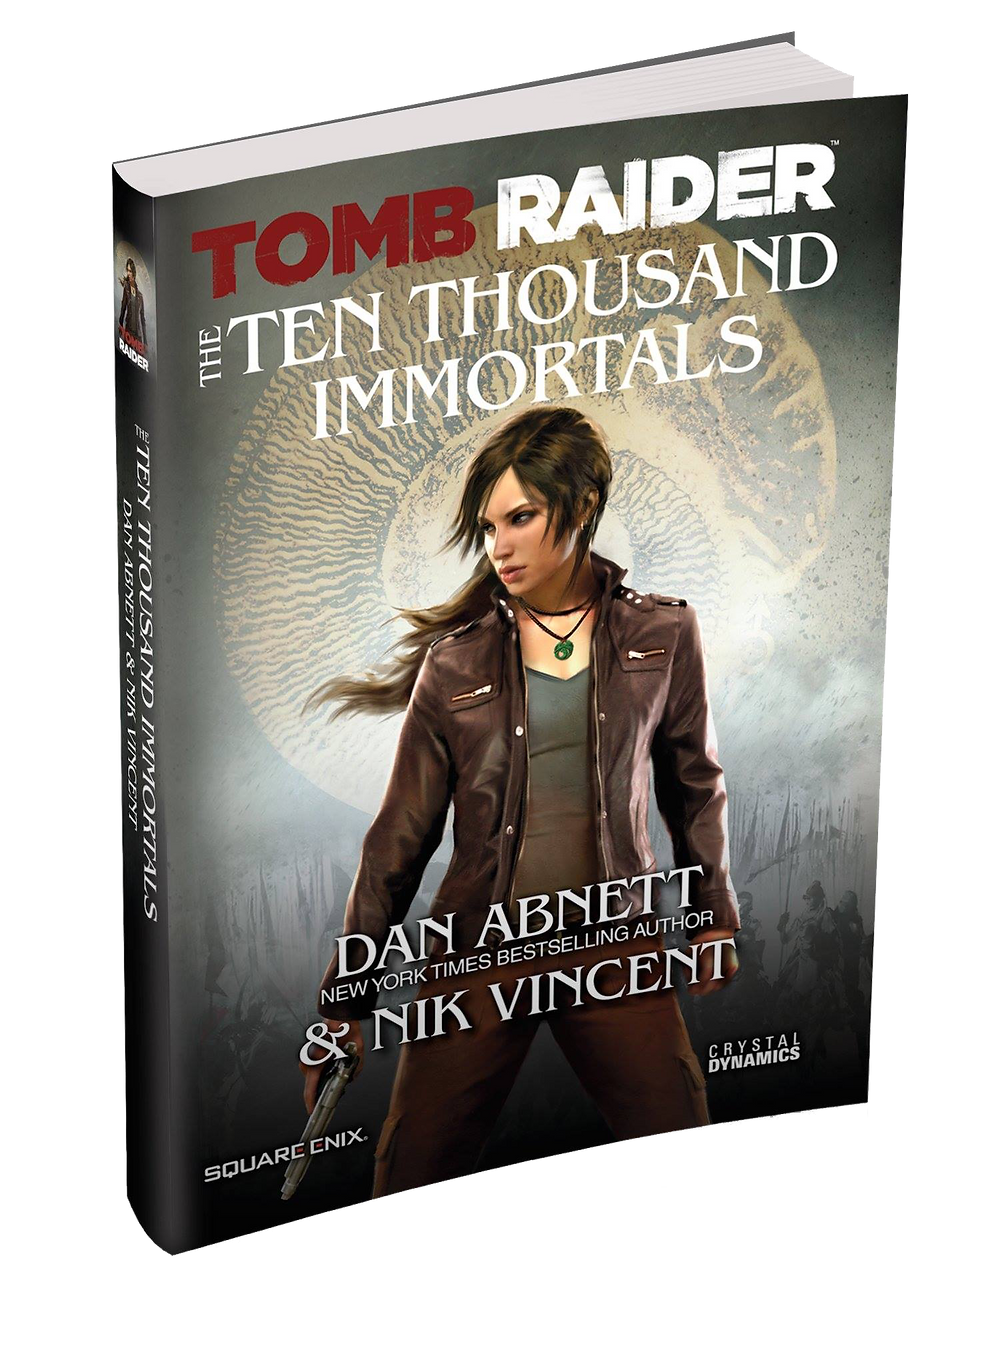 tomb_raider_the_ten_thousand_immortals.png